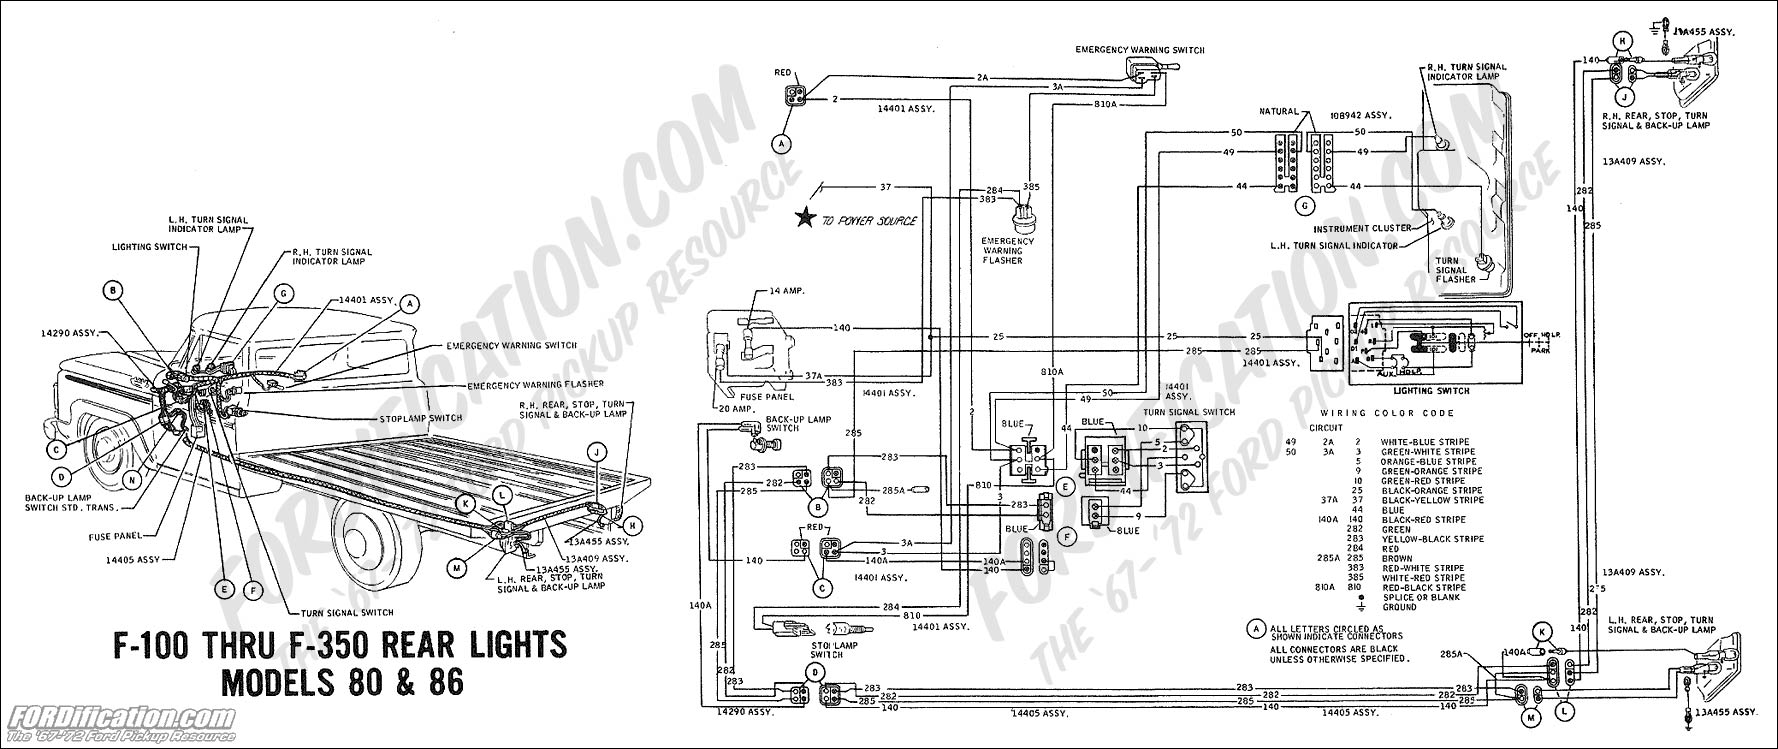 hight resolution of bluebird wiring diagrams headlight switch wiring diagram forwardblue bird wiring schematic 1998 wiring diagram data schema